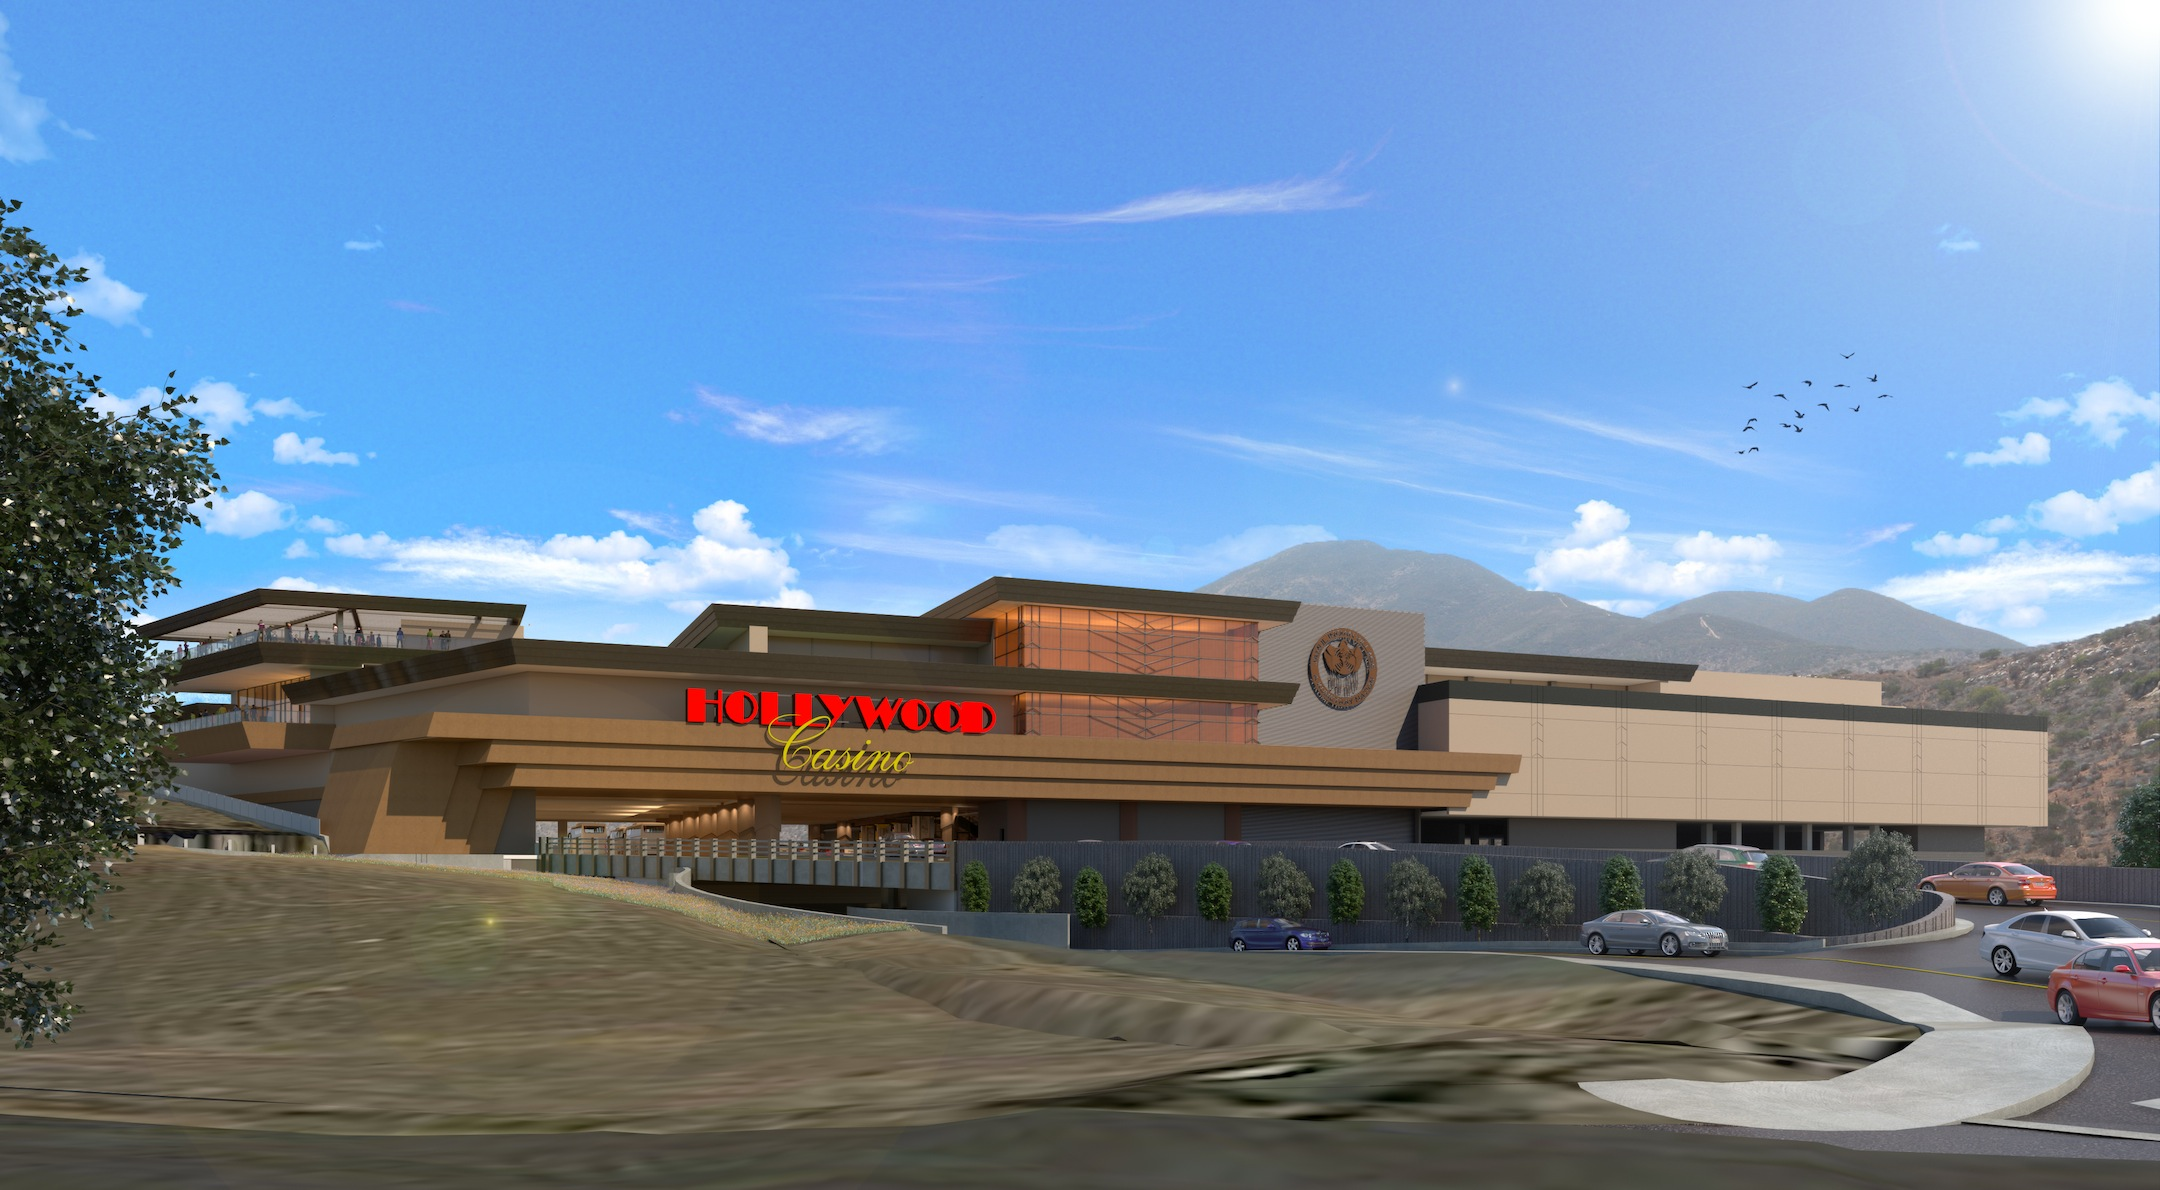 The proposed Hollywood Casino Jamul-San Diego